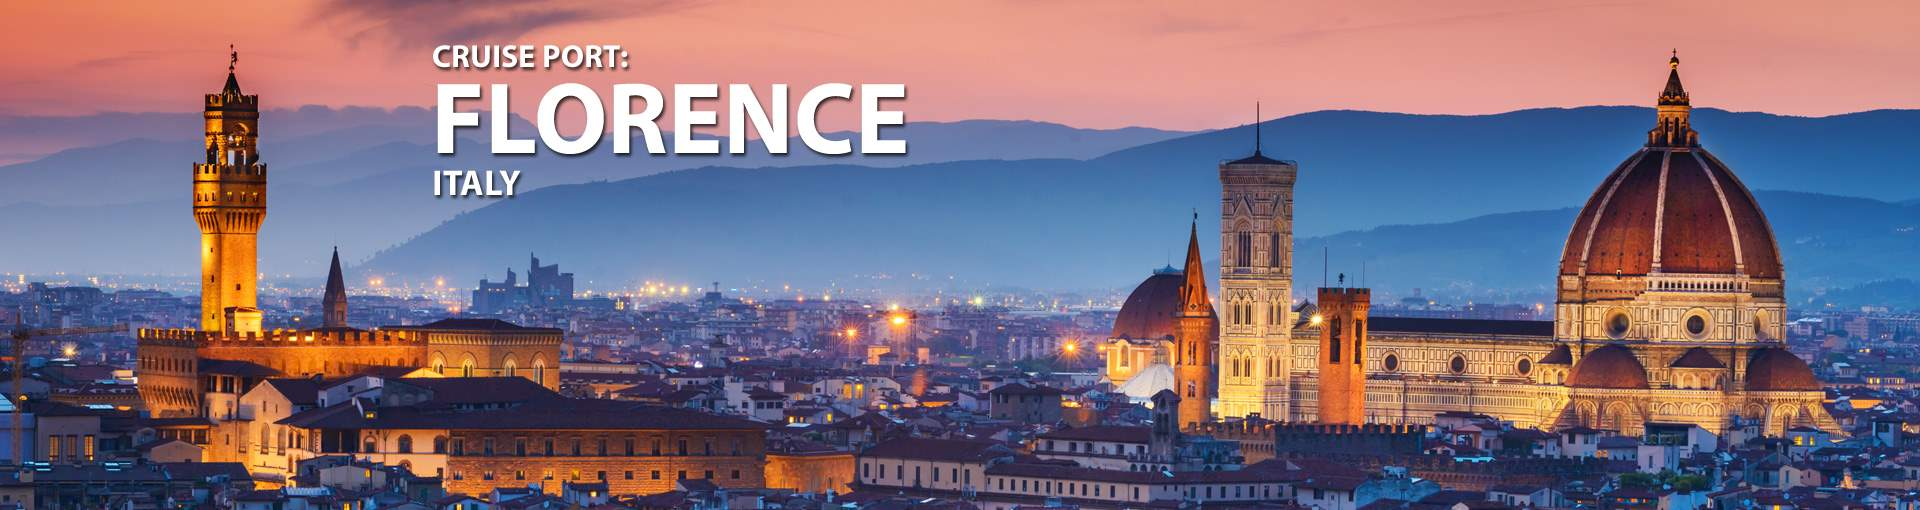 Cruises to Florence, Italy